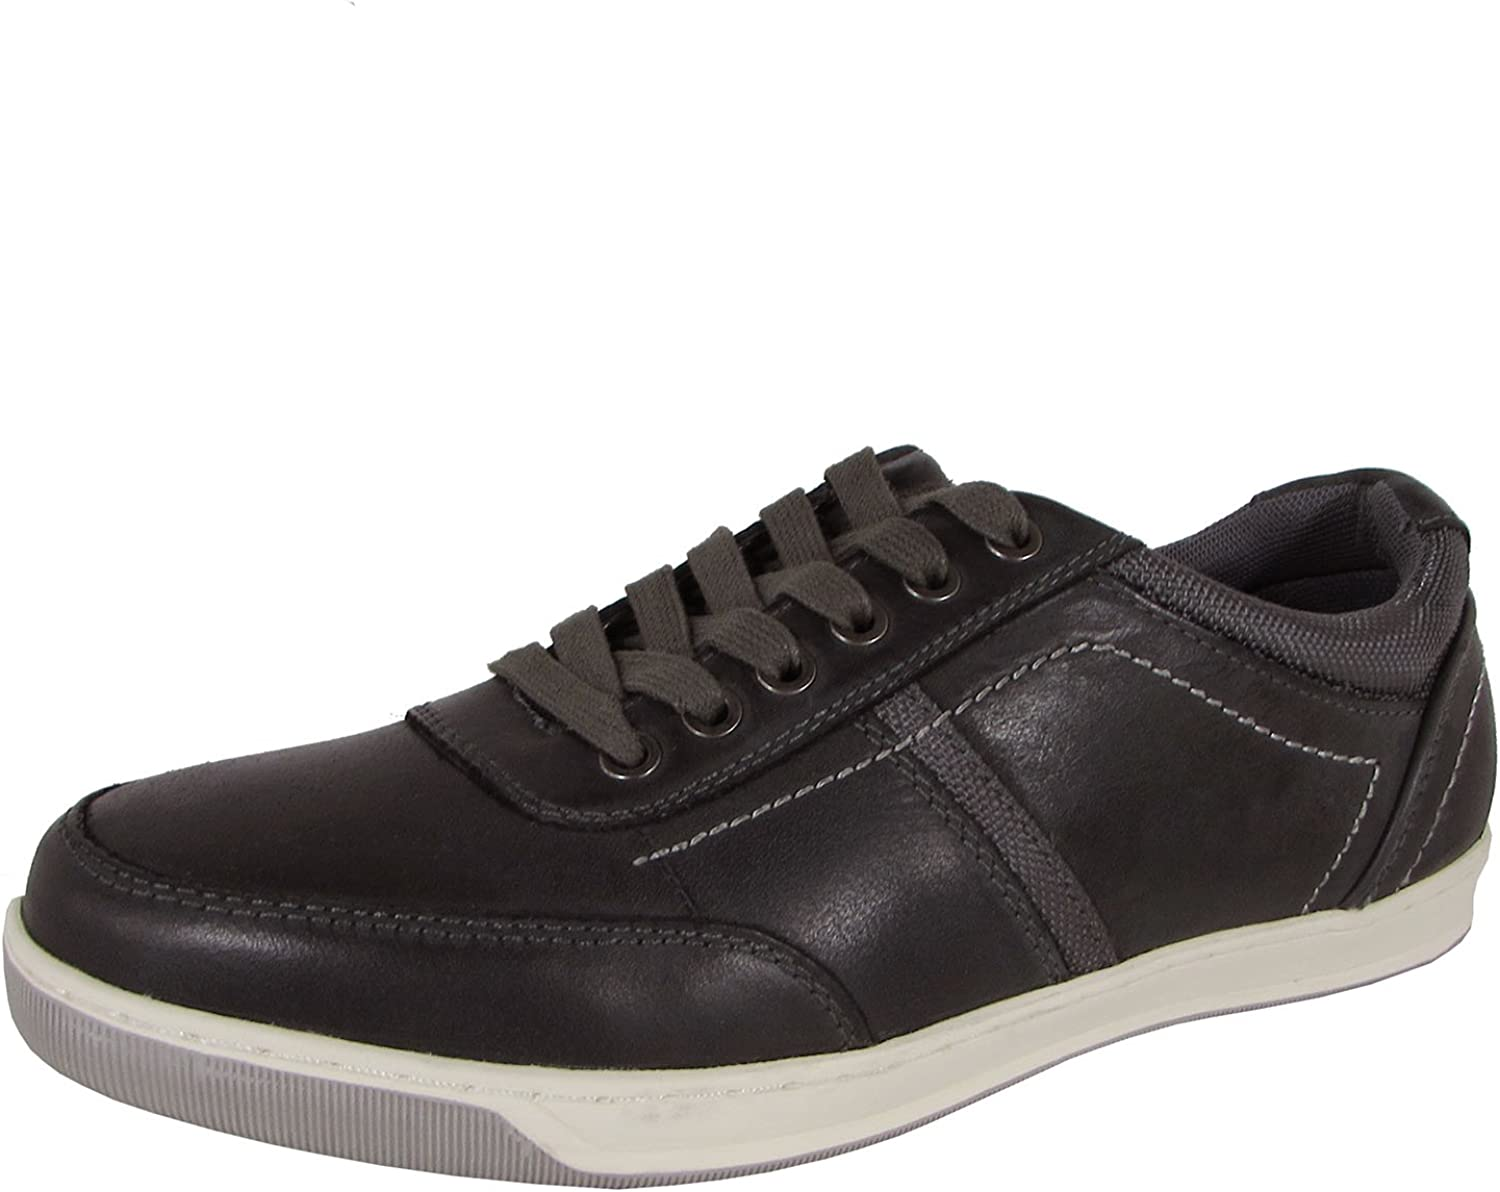 Steve Madden Mens P-Daily Lace Up Retro Sneaker Shoes US 8.5 Grey Leather